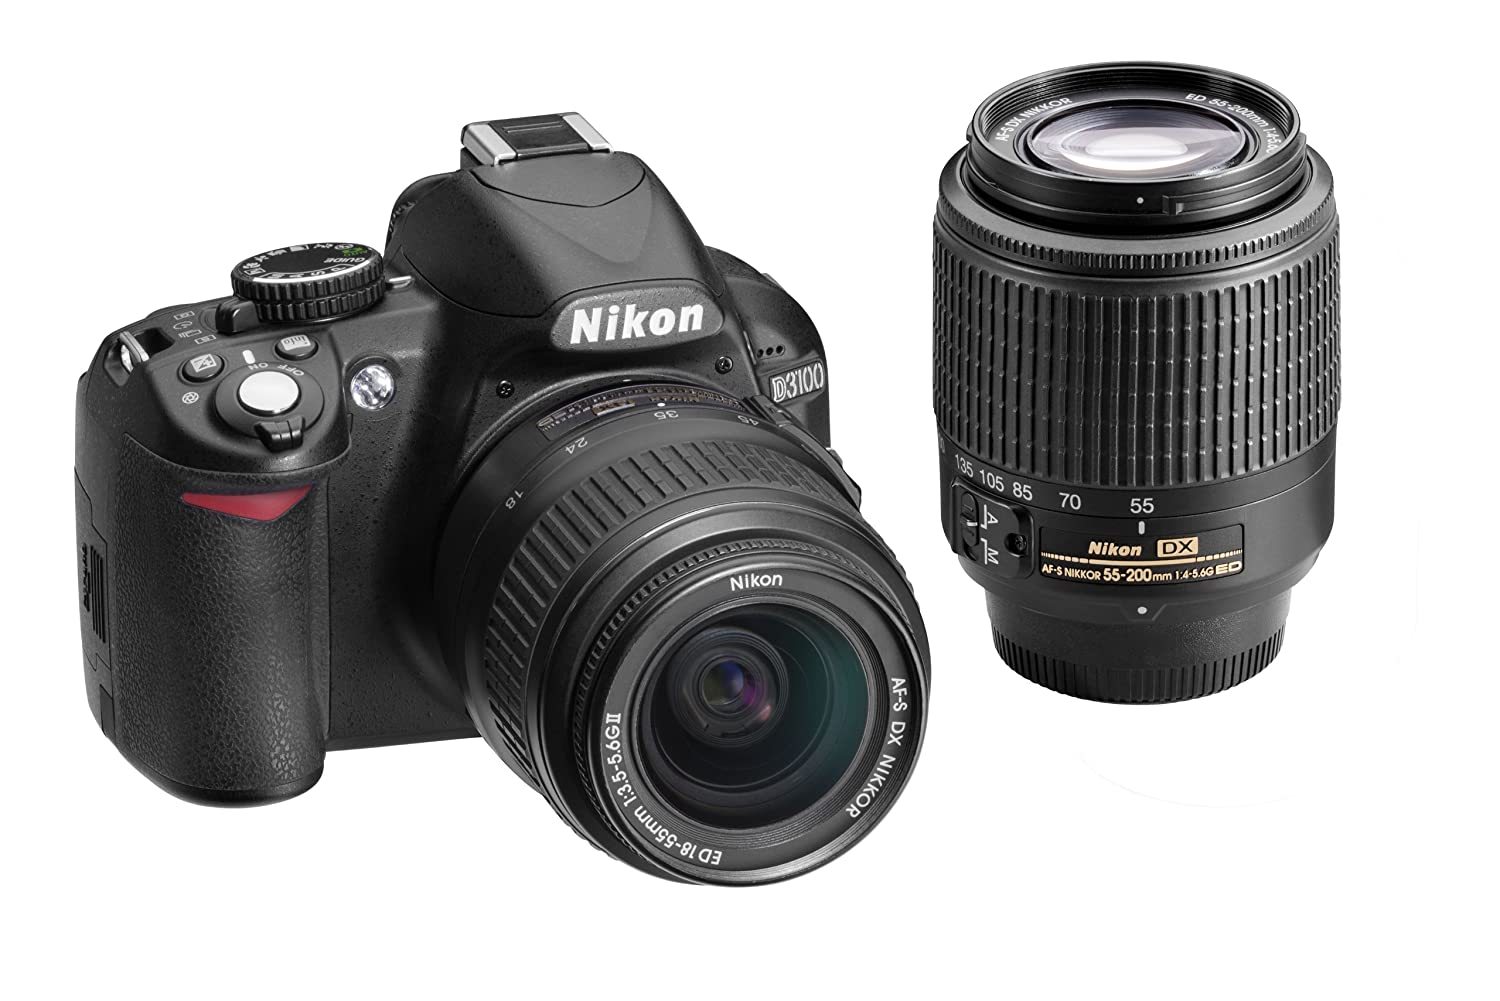 Gift of the Day: Save Big on the Nikon D3100 with Two Lenses and Get a Free Memory Card and Bag $496.95